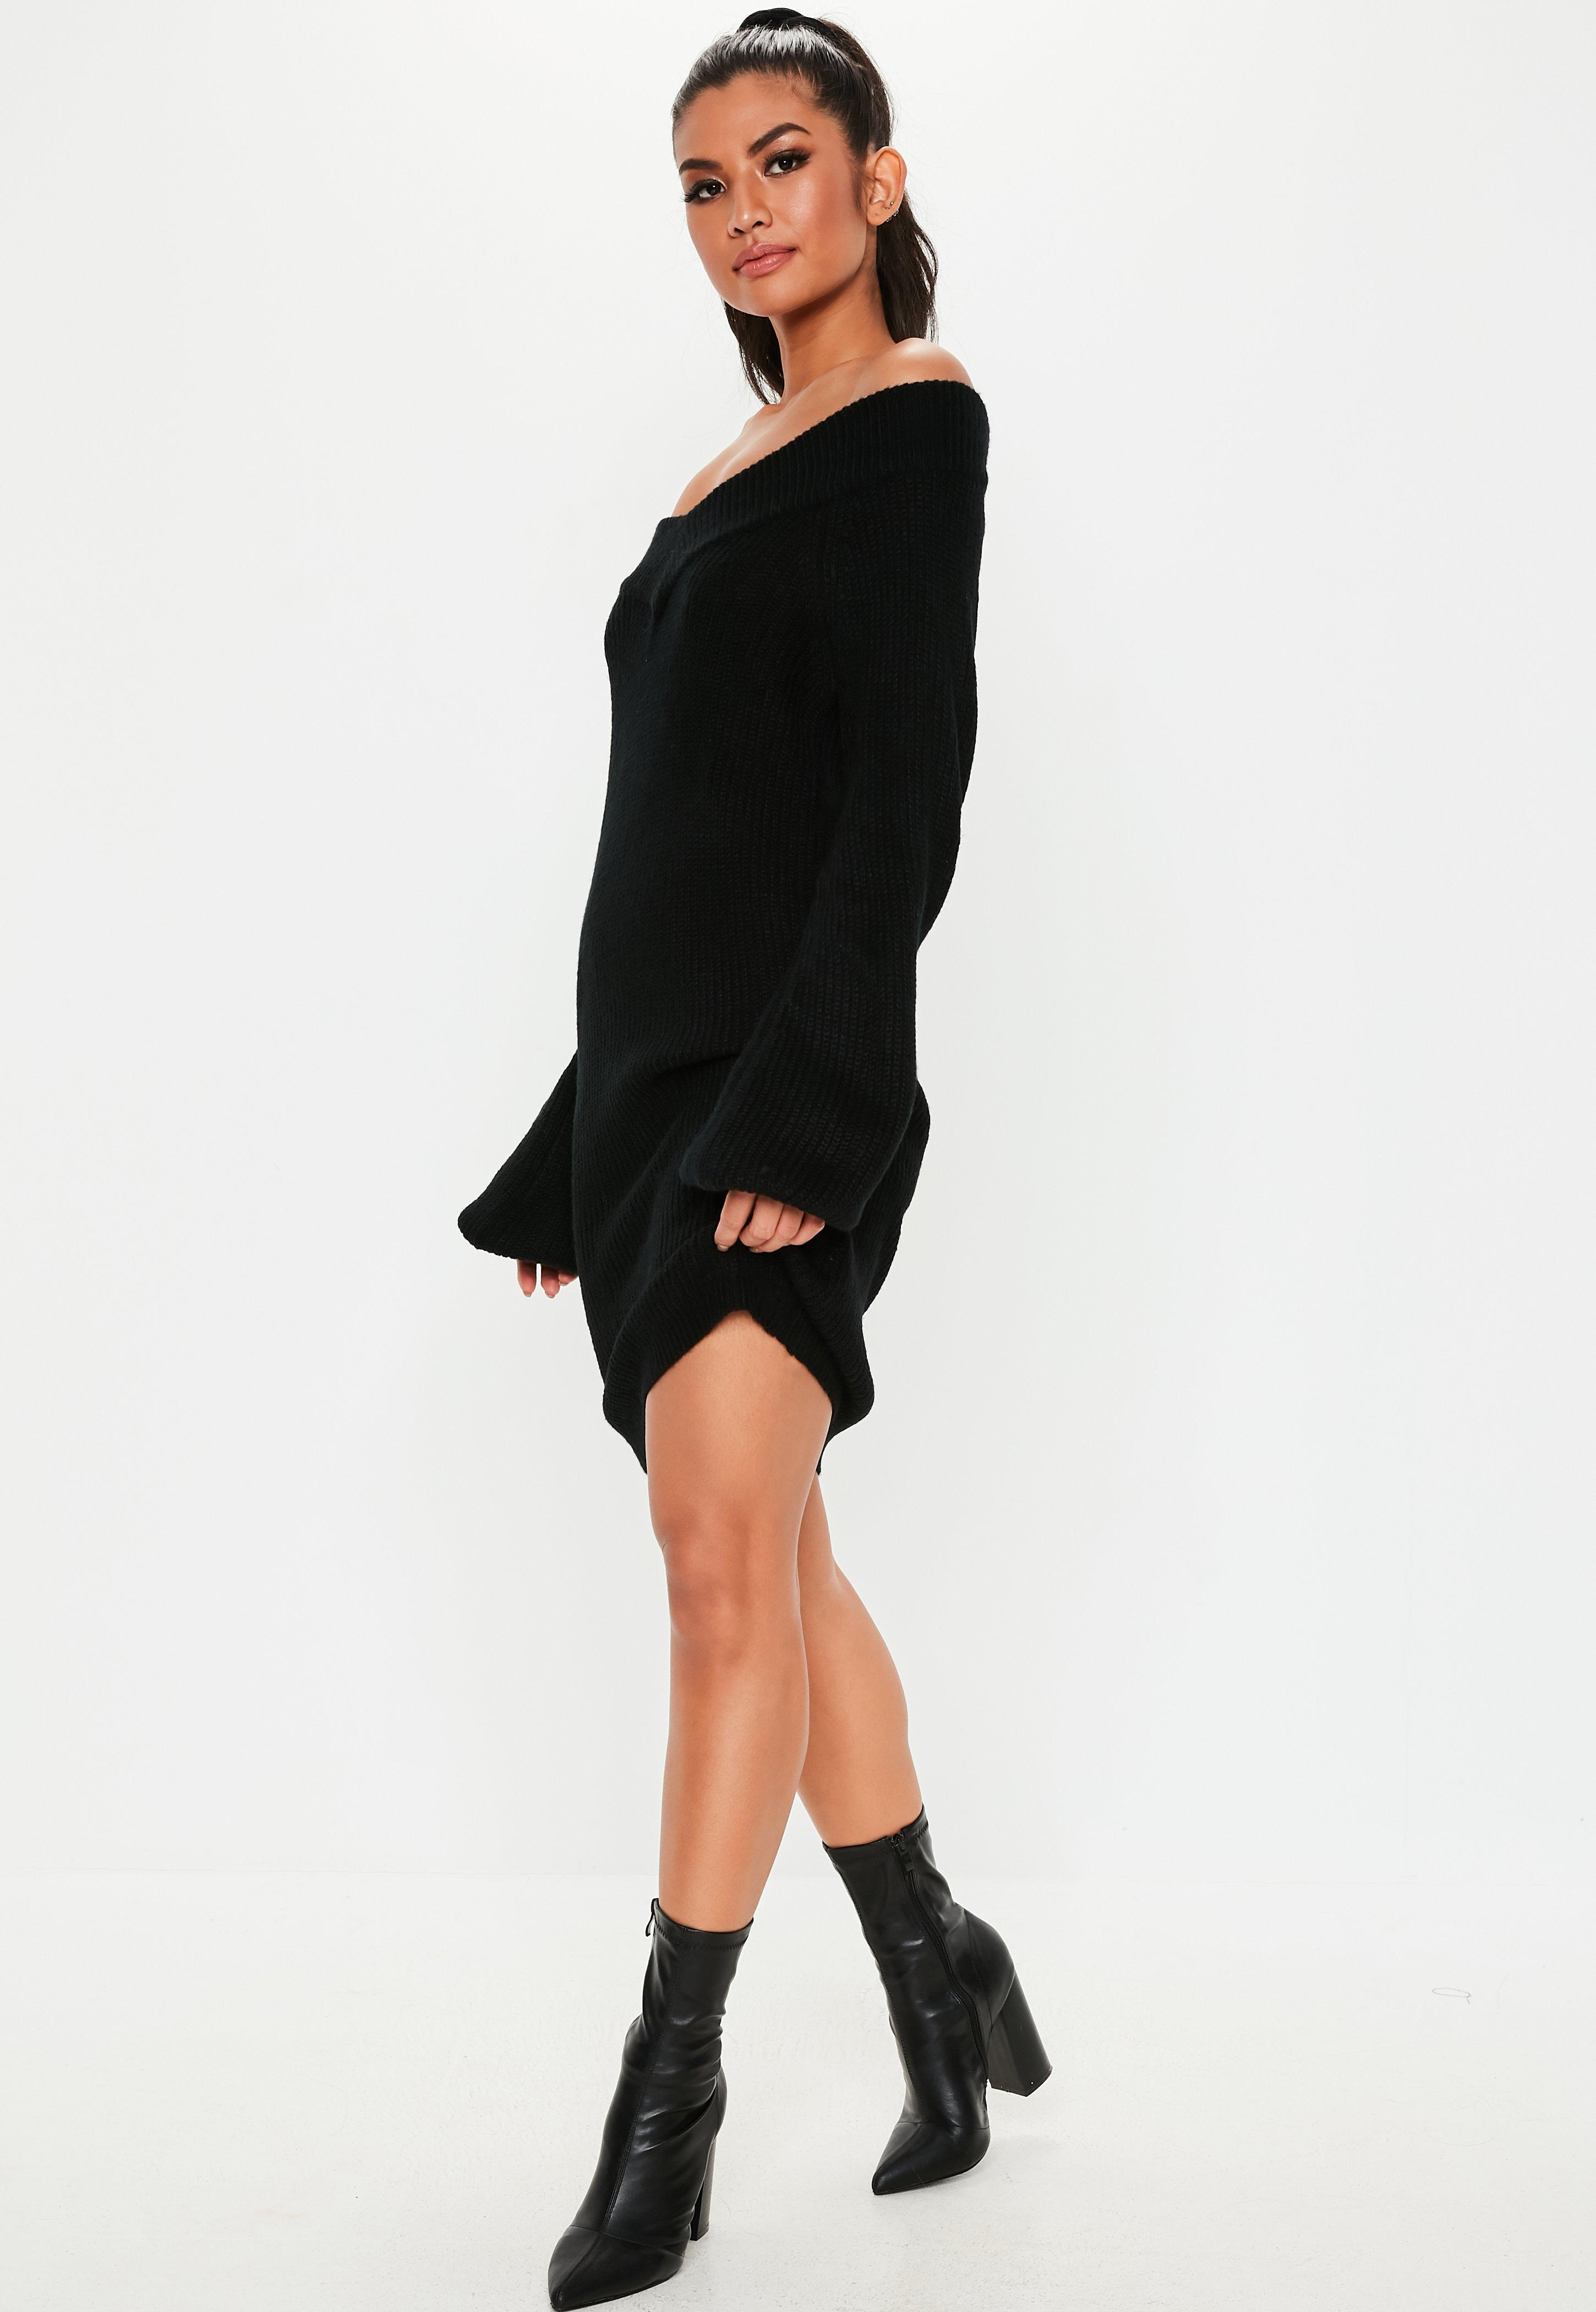 83fc3ed3410 Missguided Petite Black V Neck Sweater Dress in Black - Save 52% - Lyst